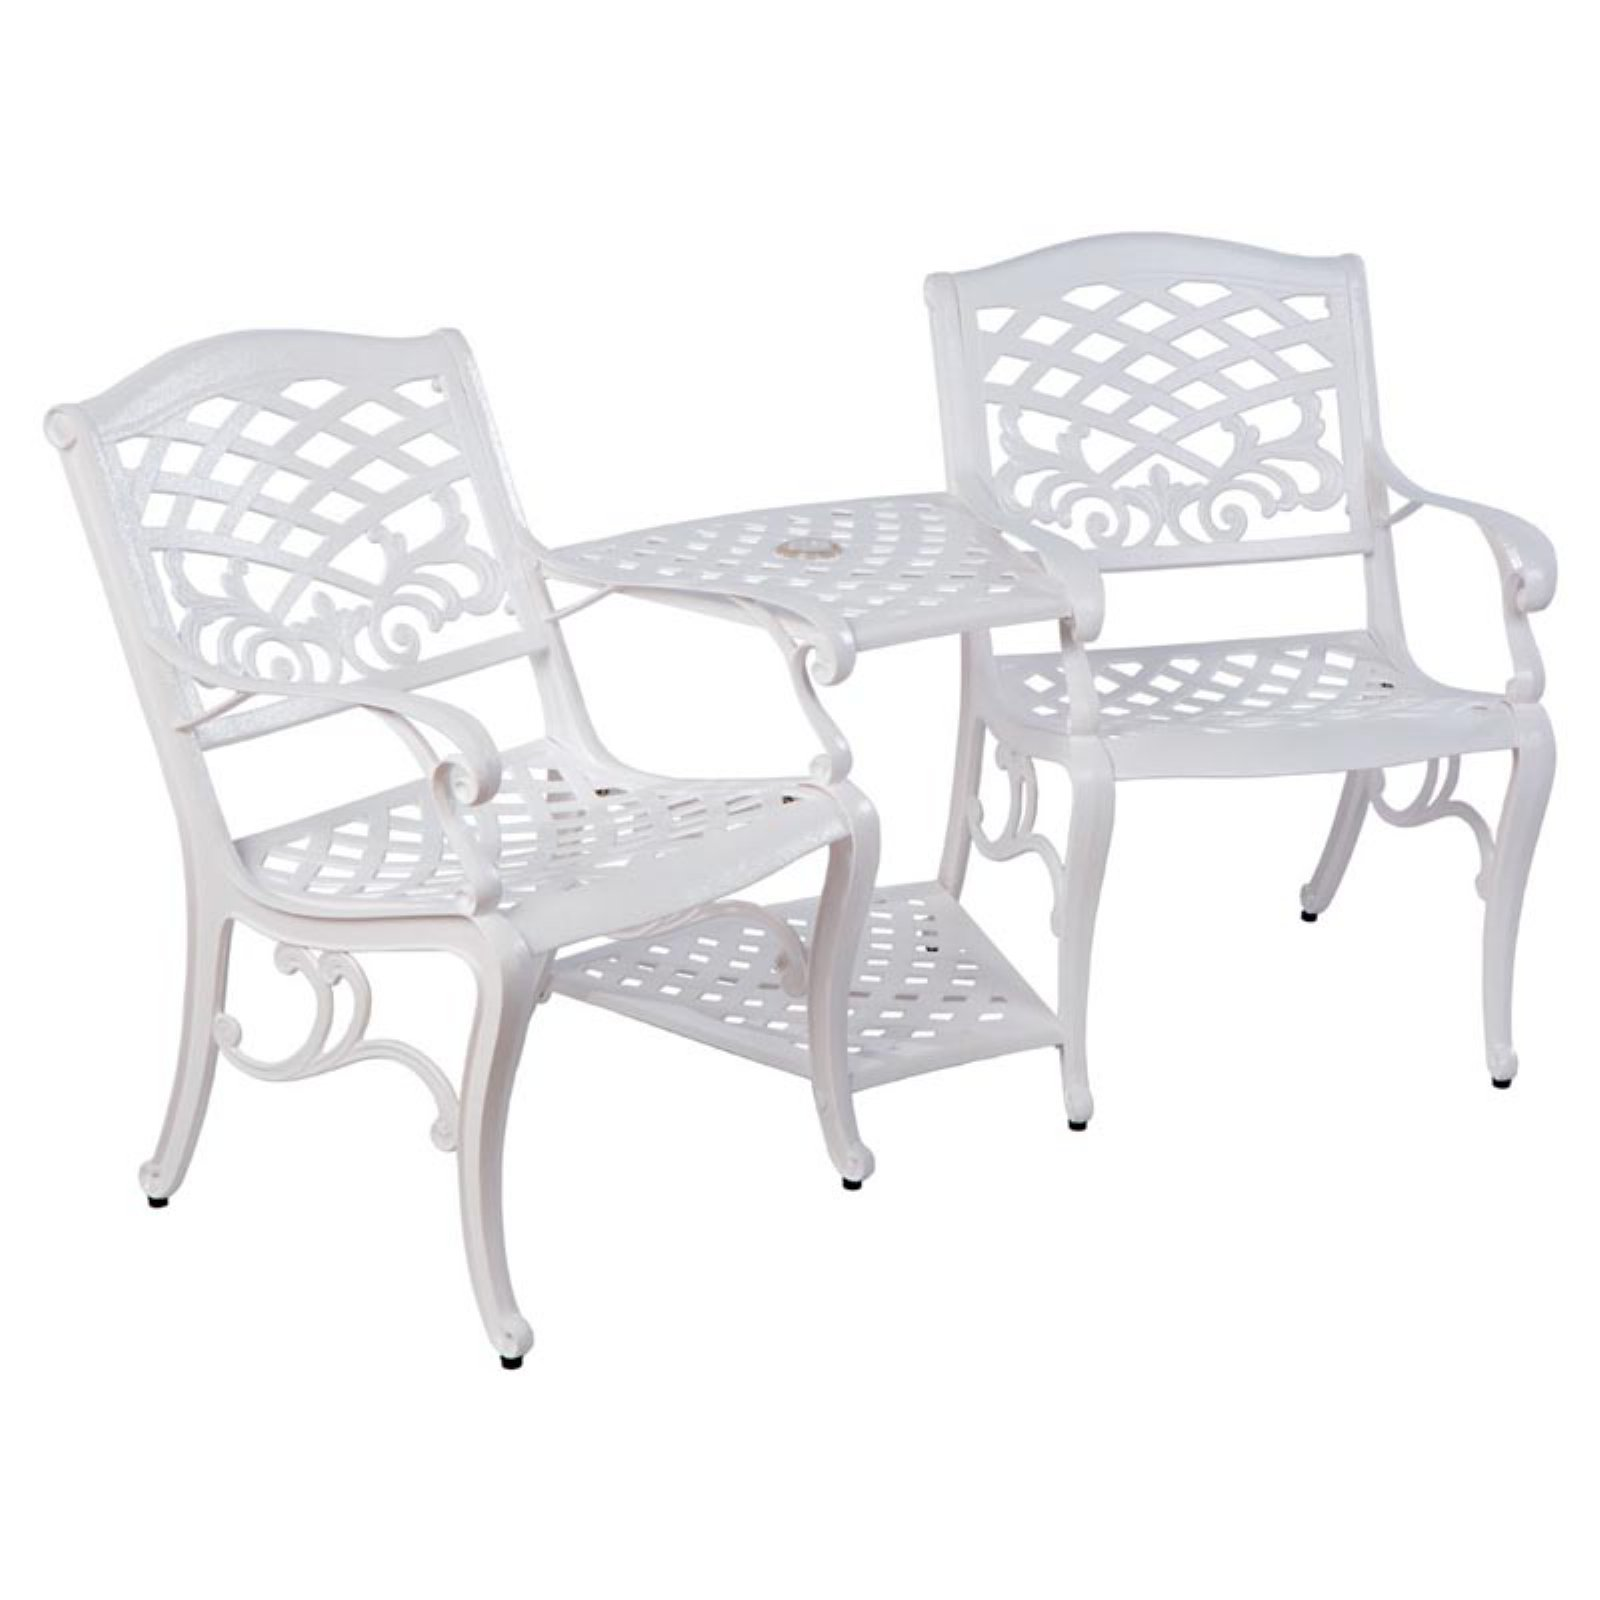 Alfresco Home Tete-a-Tete Cast Aluminum 38 in. Bench with Umbrella Hole